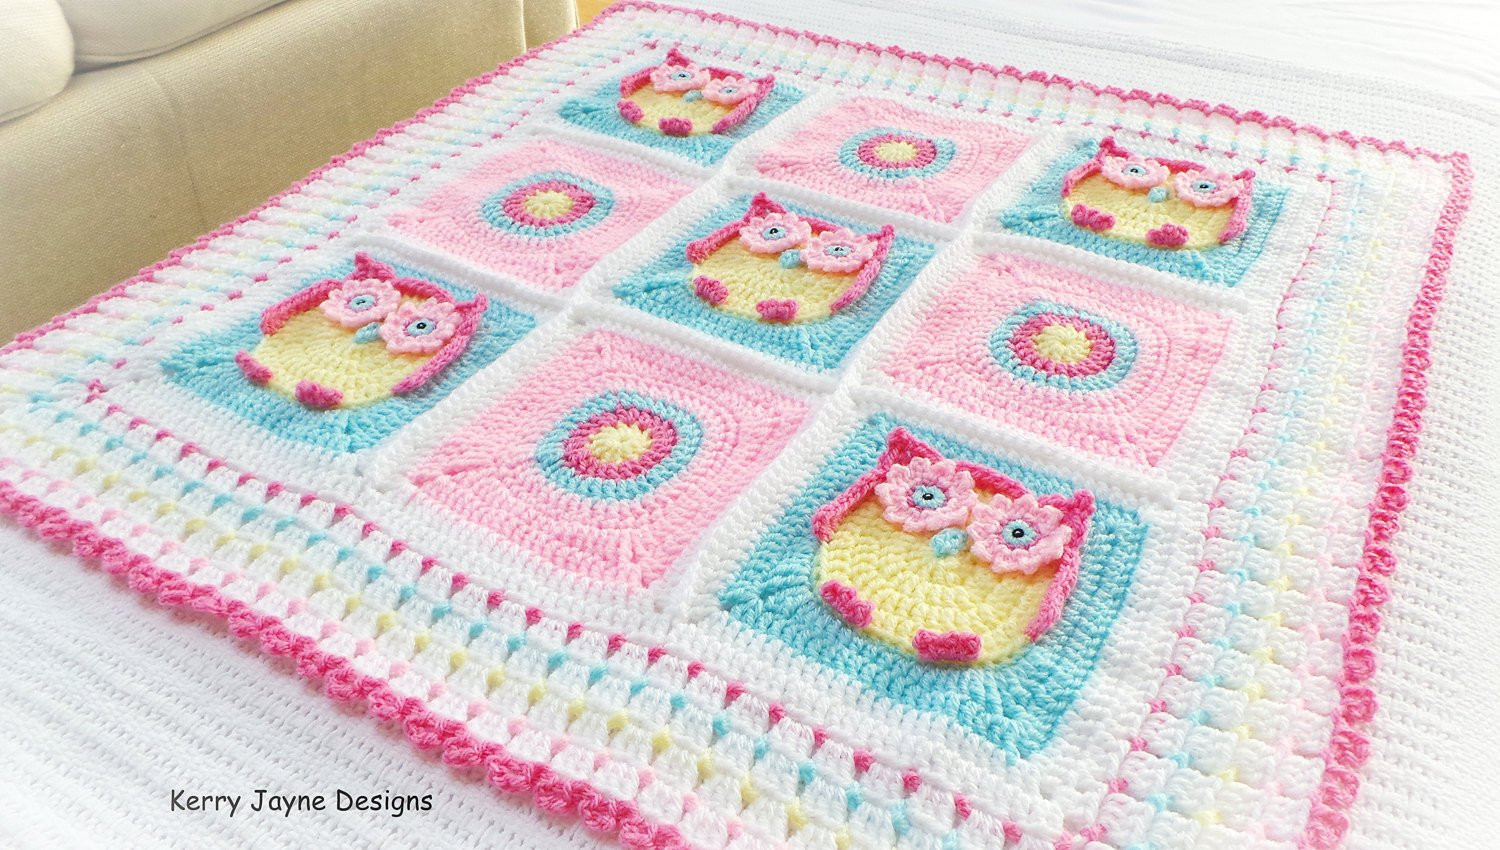 Crochet toddler Blanket Awesome Crochet Baby Blanket Pattern Crochet Pattern Owl Blanket Of Amazing 41 Ideas Crochet toddler Blanket